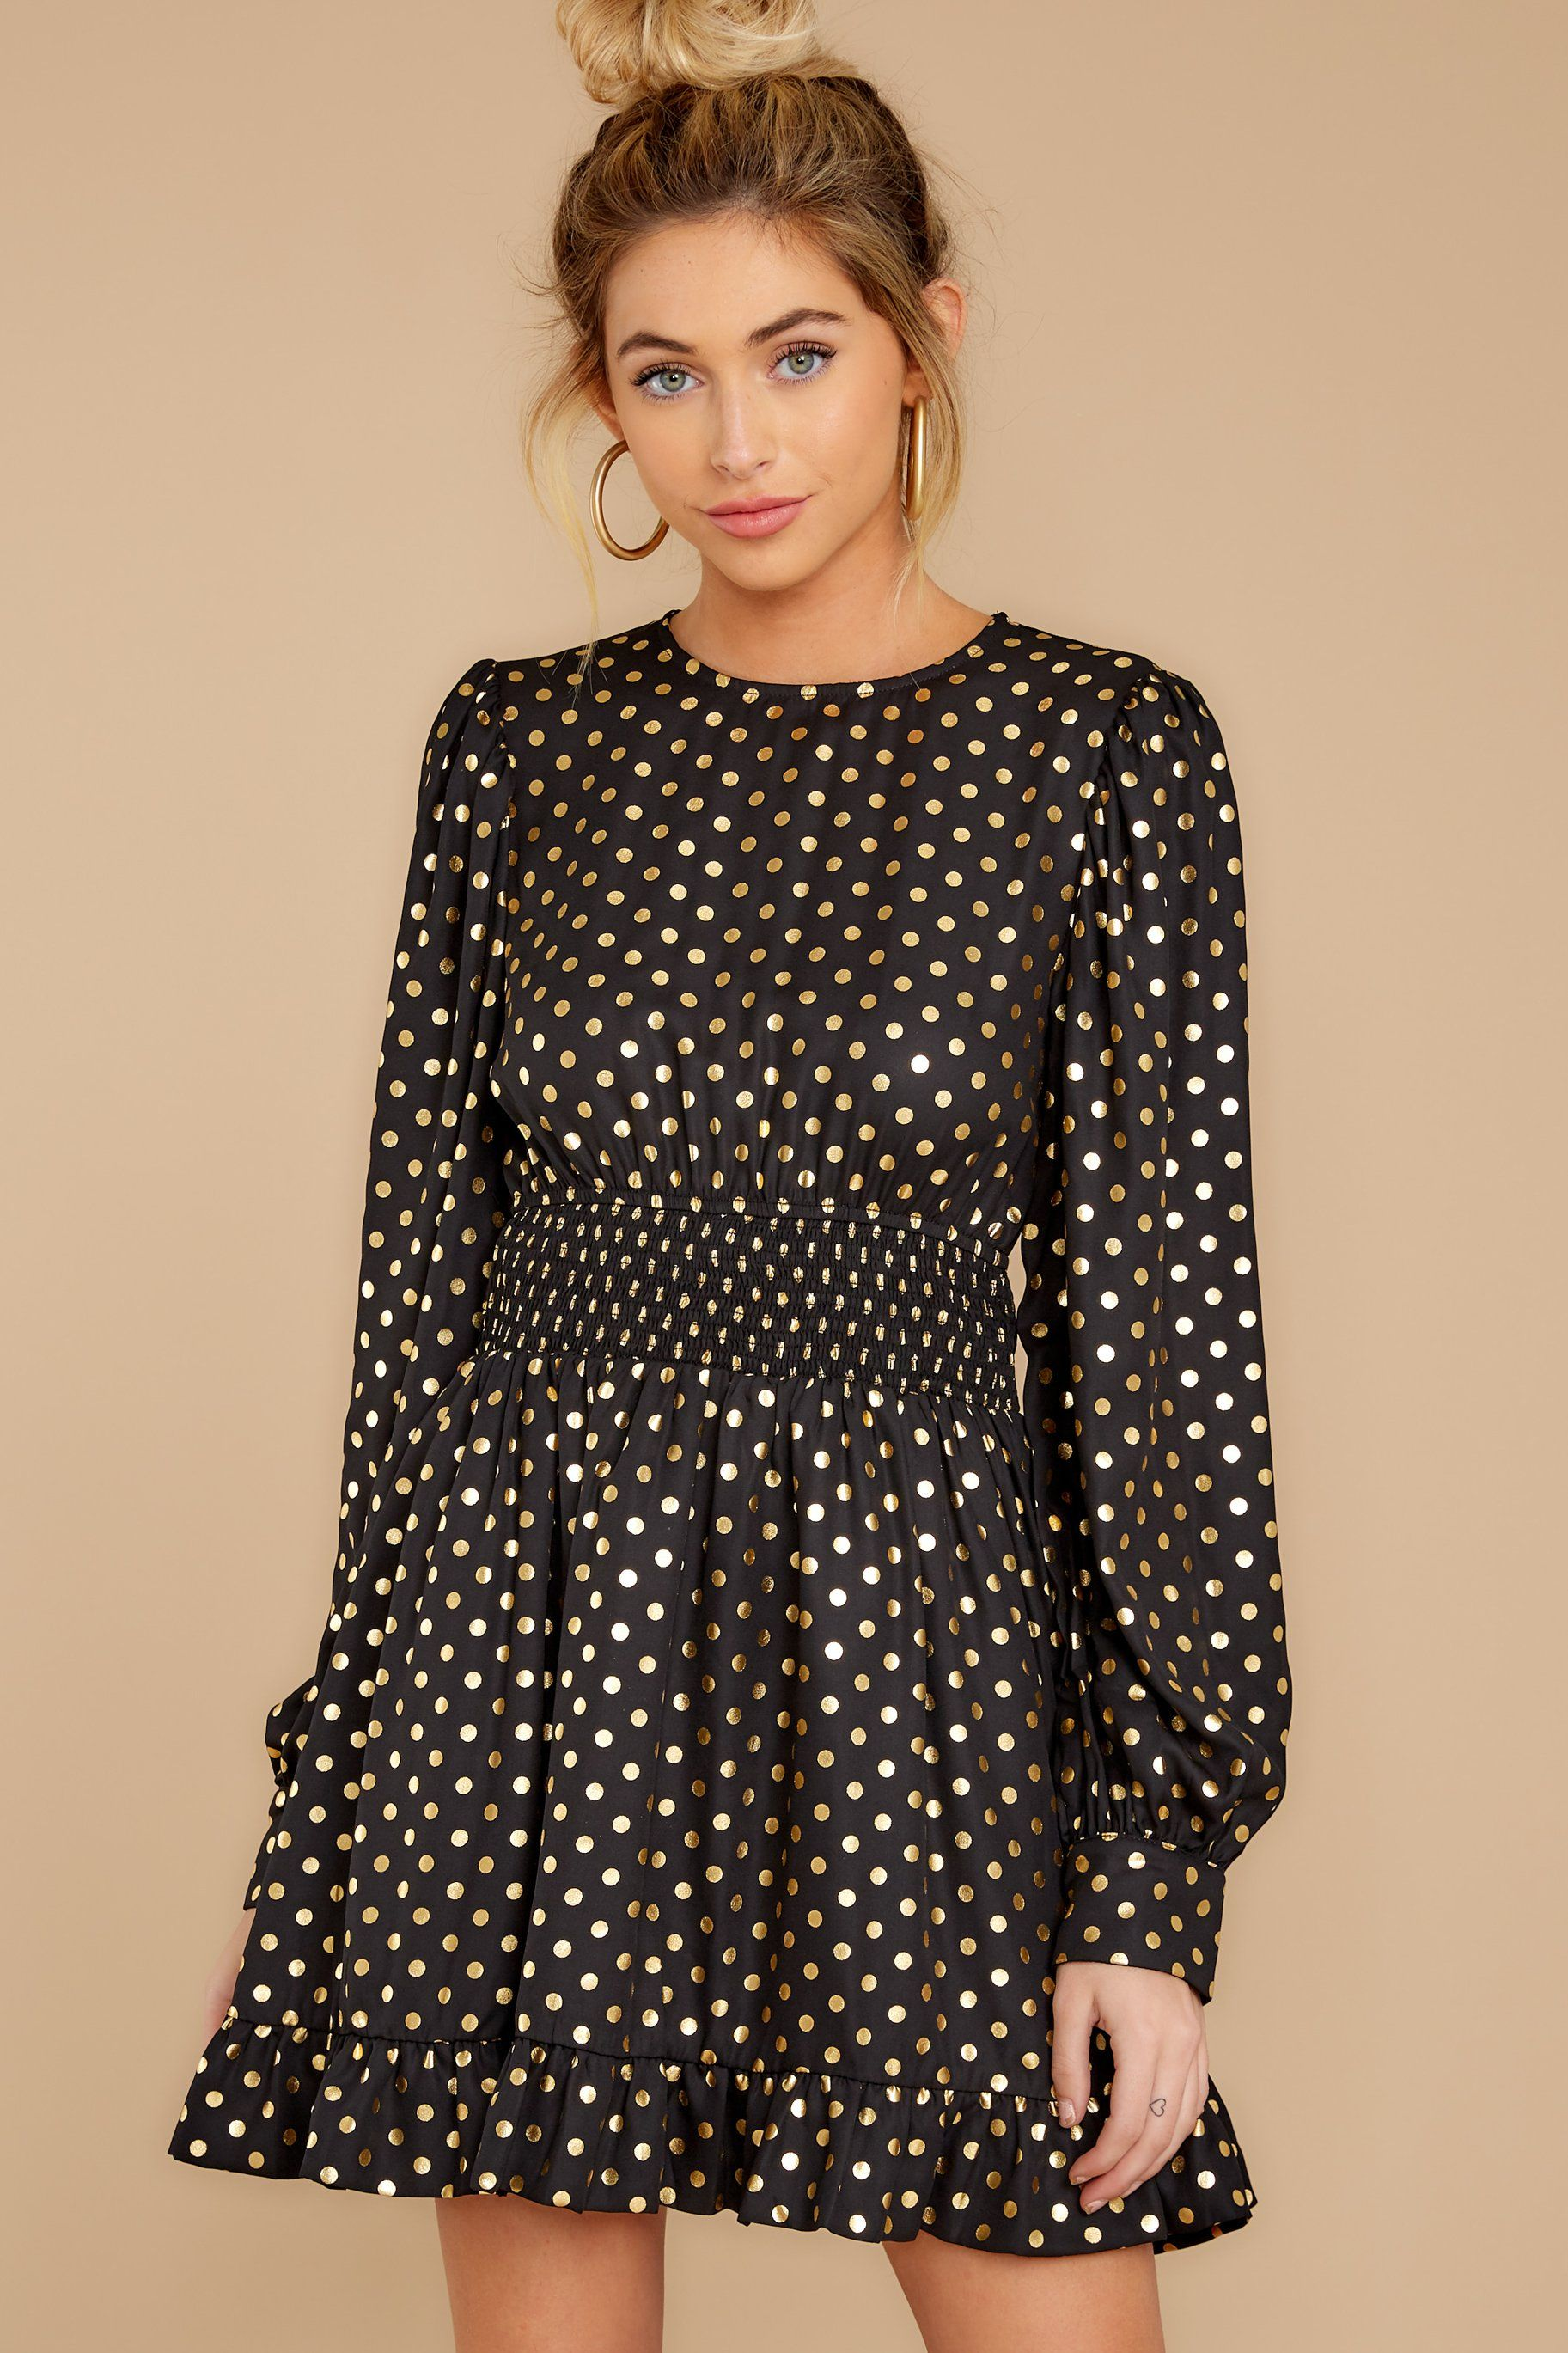 Soiree Standout Black And Gold Polka Dot Dress Sassy Dress Polka Dot Dress Dresses [ 2738 x 1825 Pixel ]